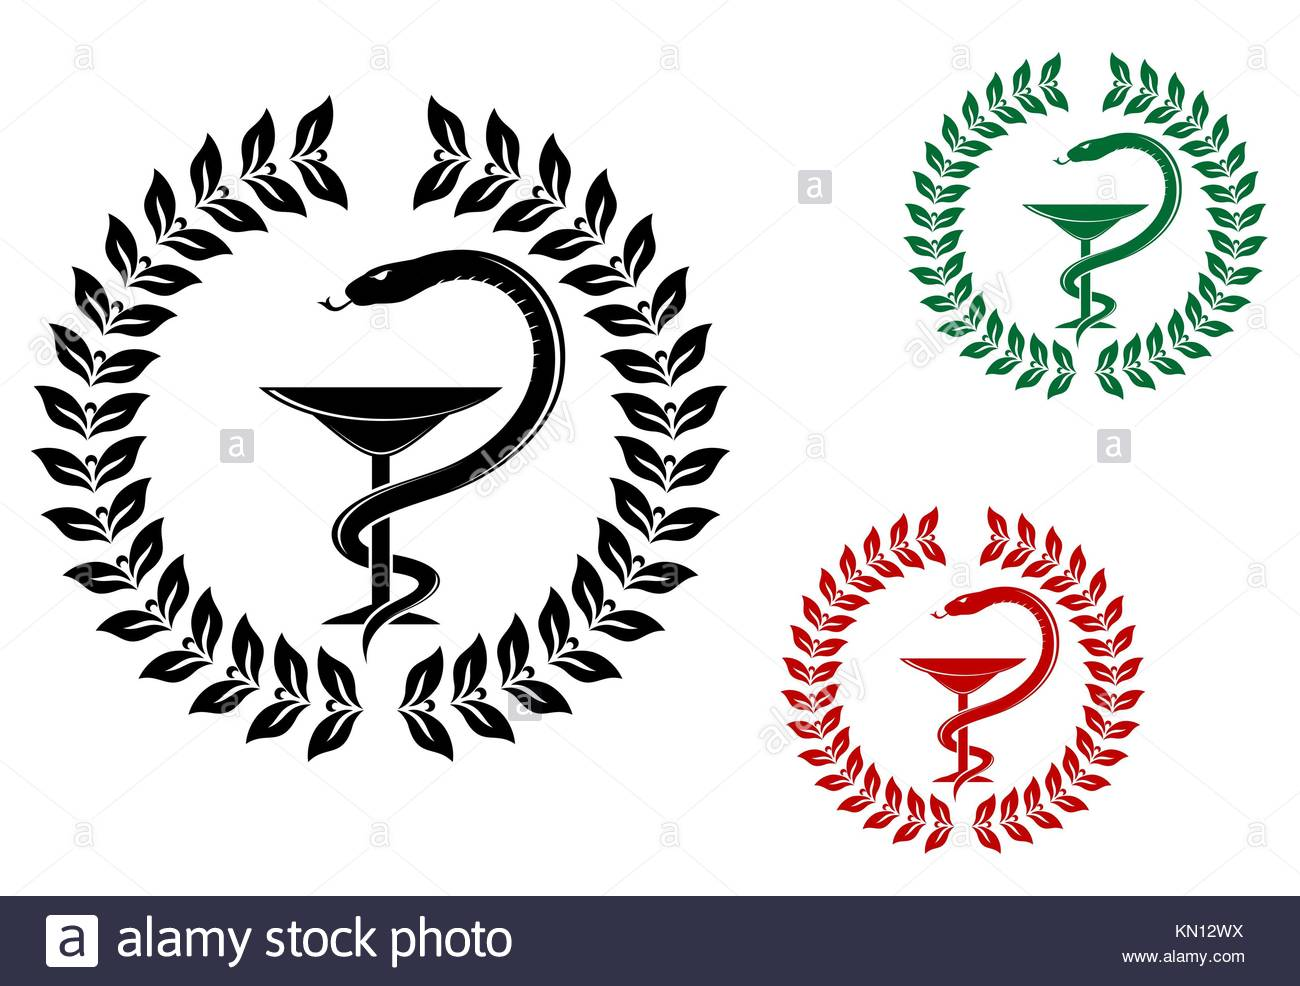 Medicine Symbol Snake Stock Photos